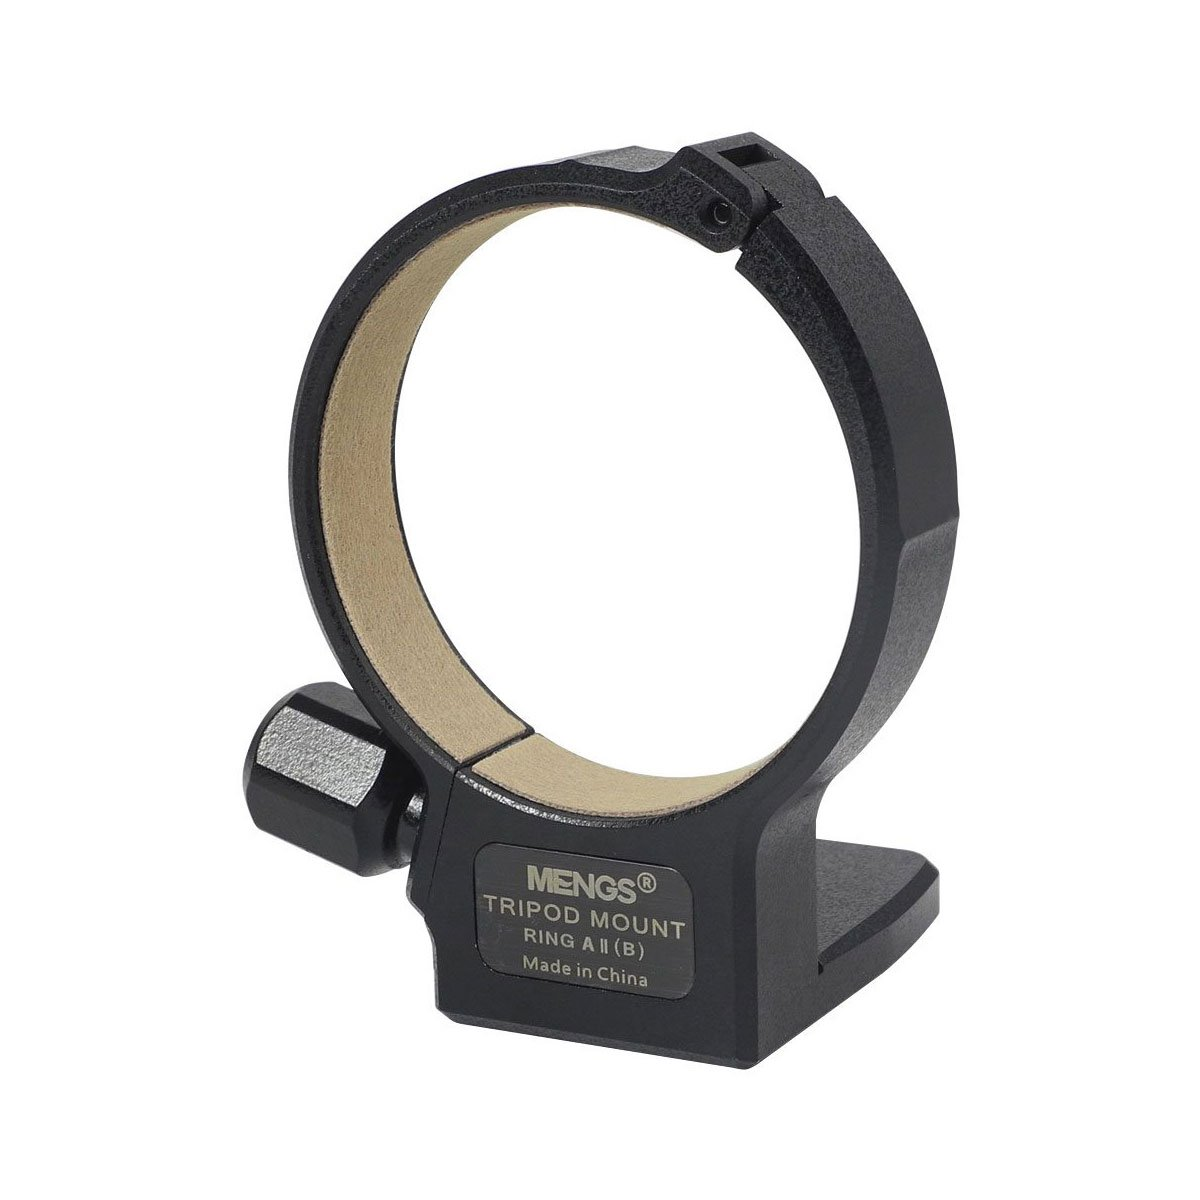 MENGS A II (B) Tripod Mount Collar Ring Aluminum Alloy For Canon EF 70-200mm f/4L